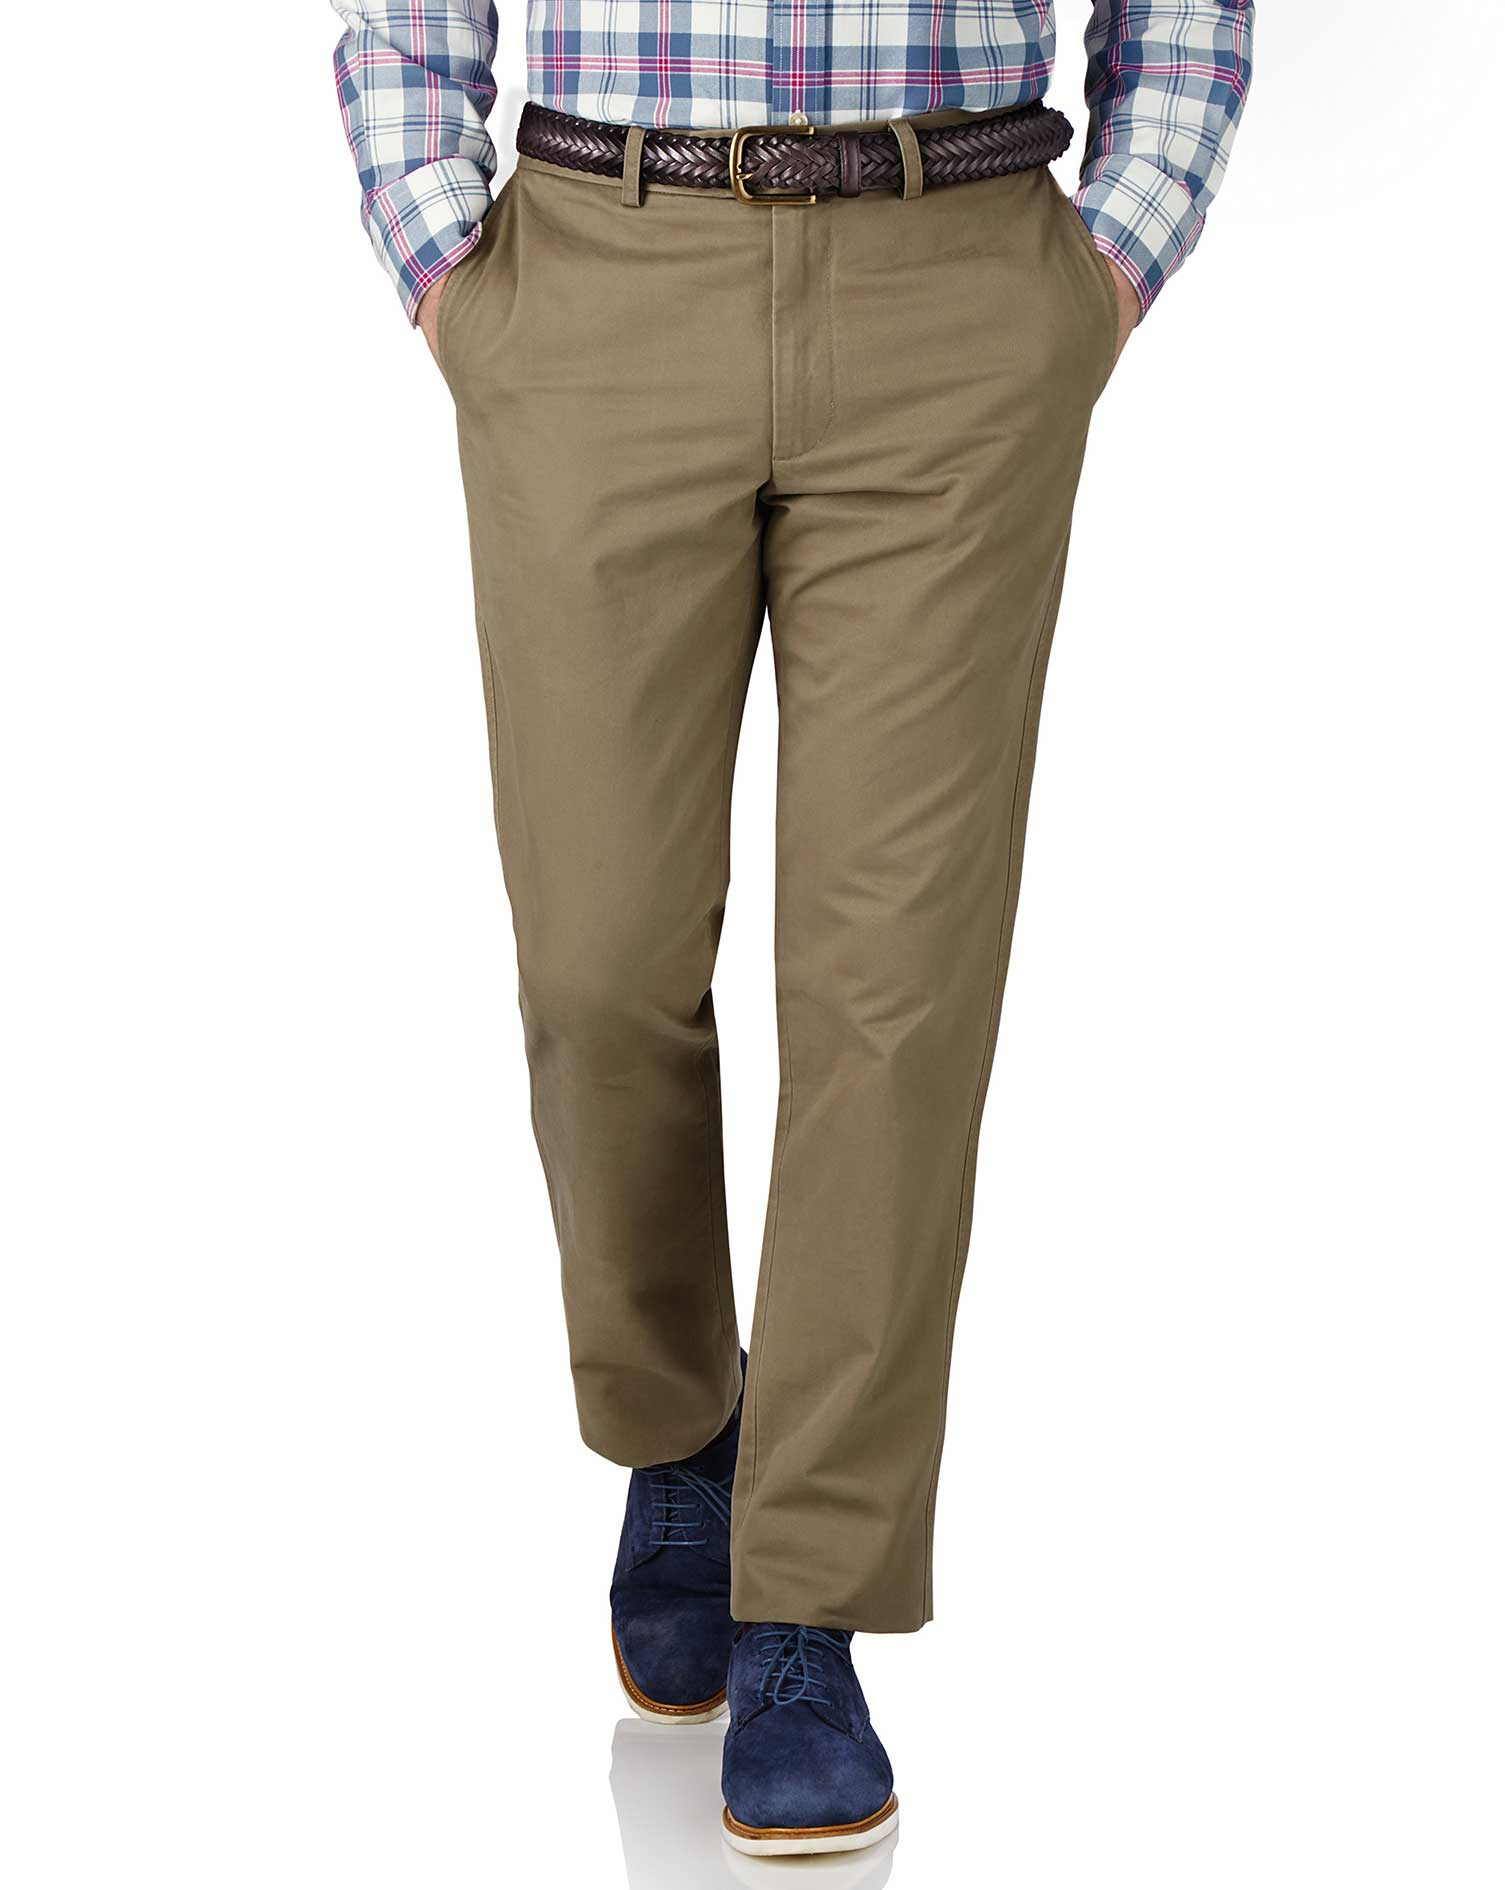 Beige Slim Fit Flat Front Cotton Chino Trousers Size W38 L34 by Charles Tyrwhitt